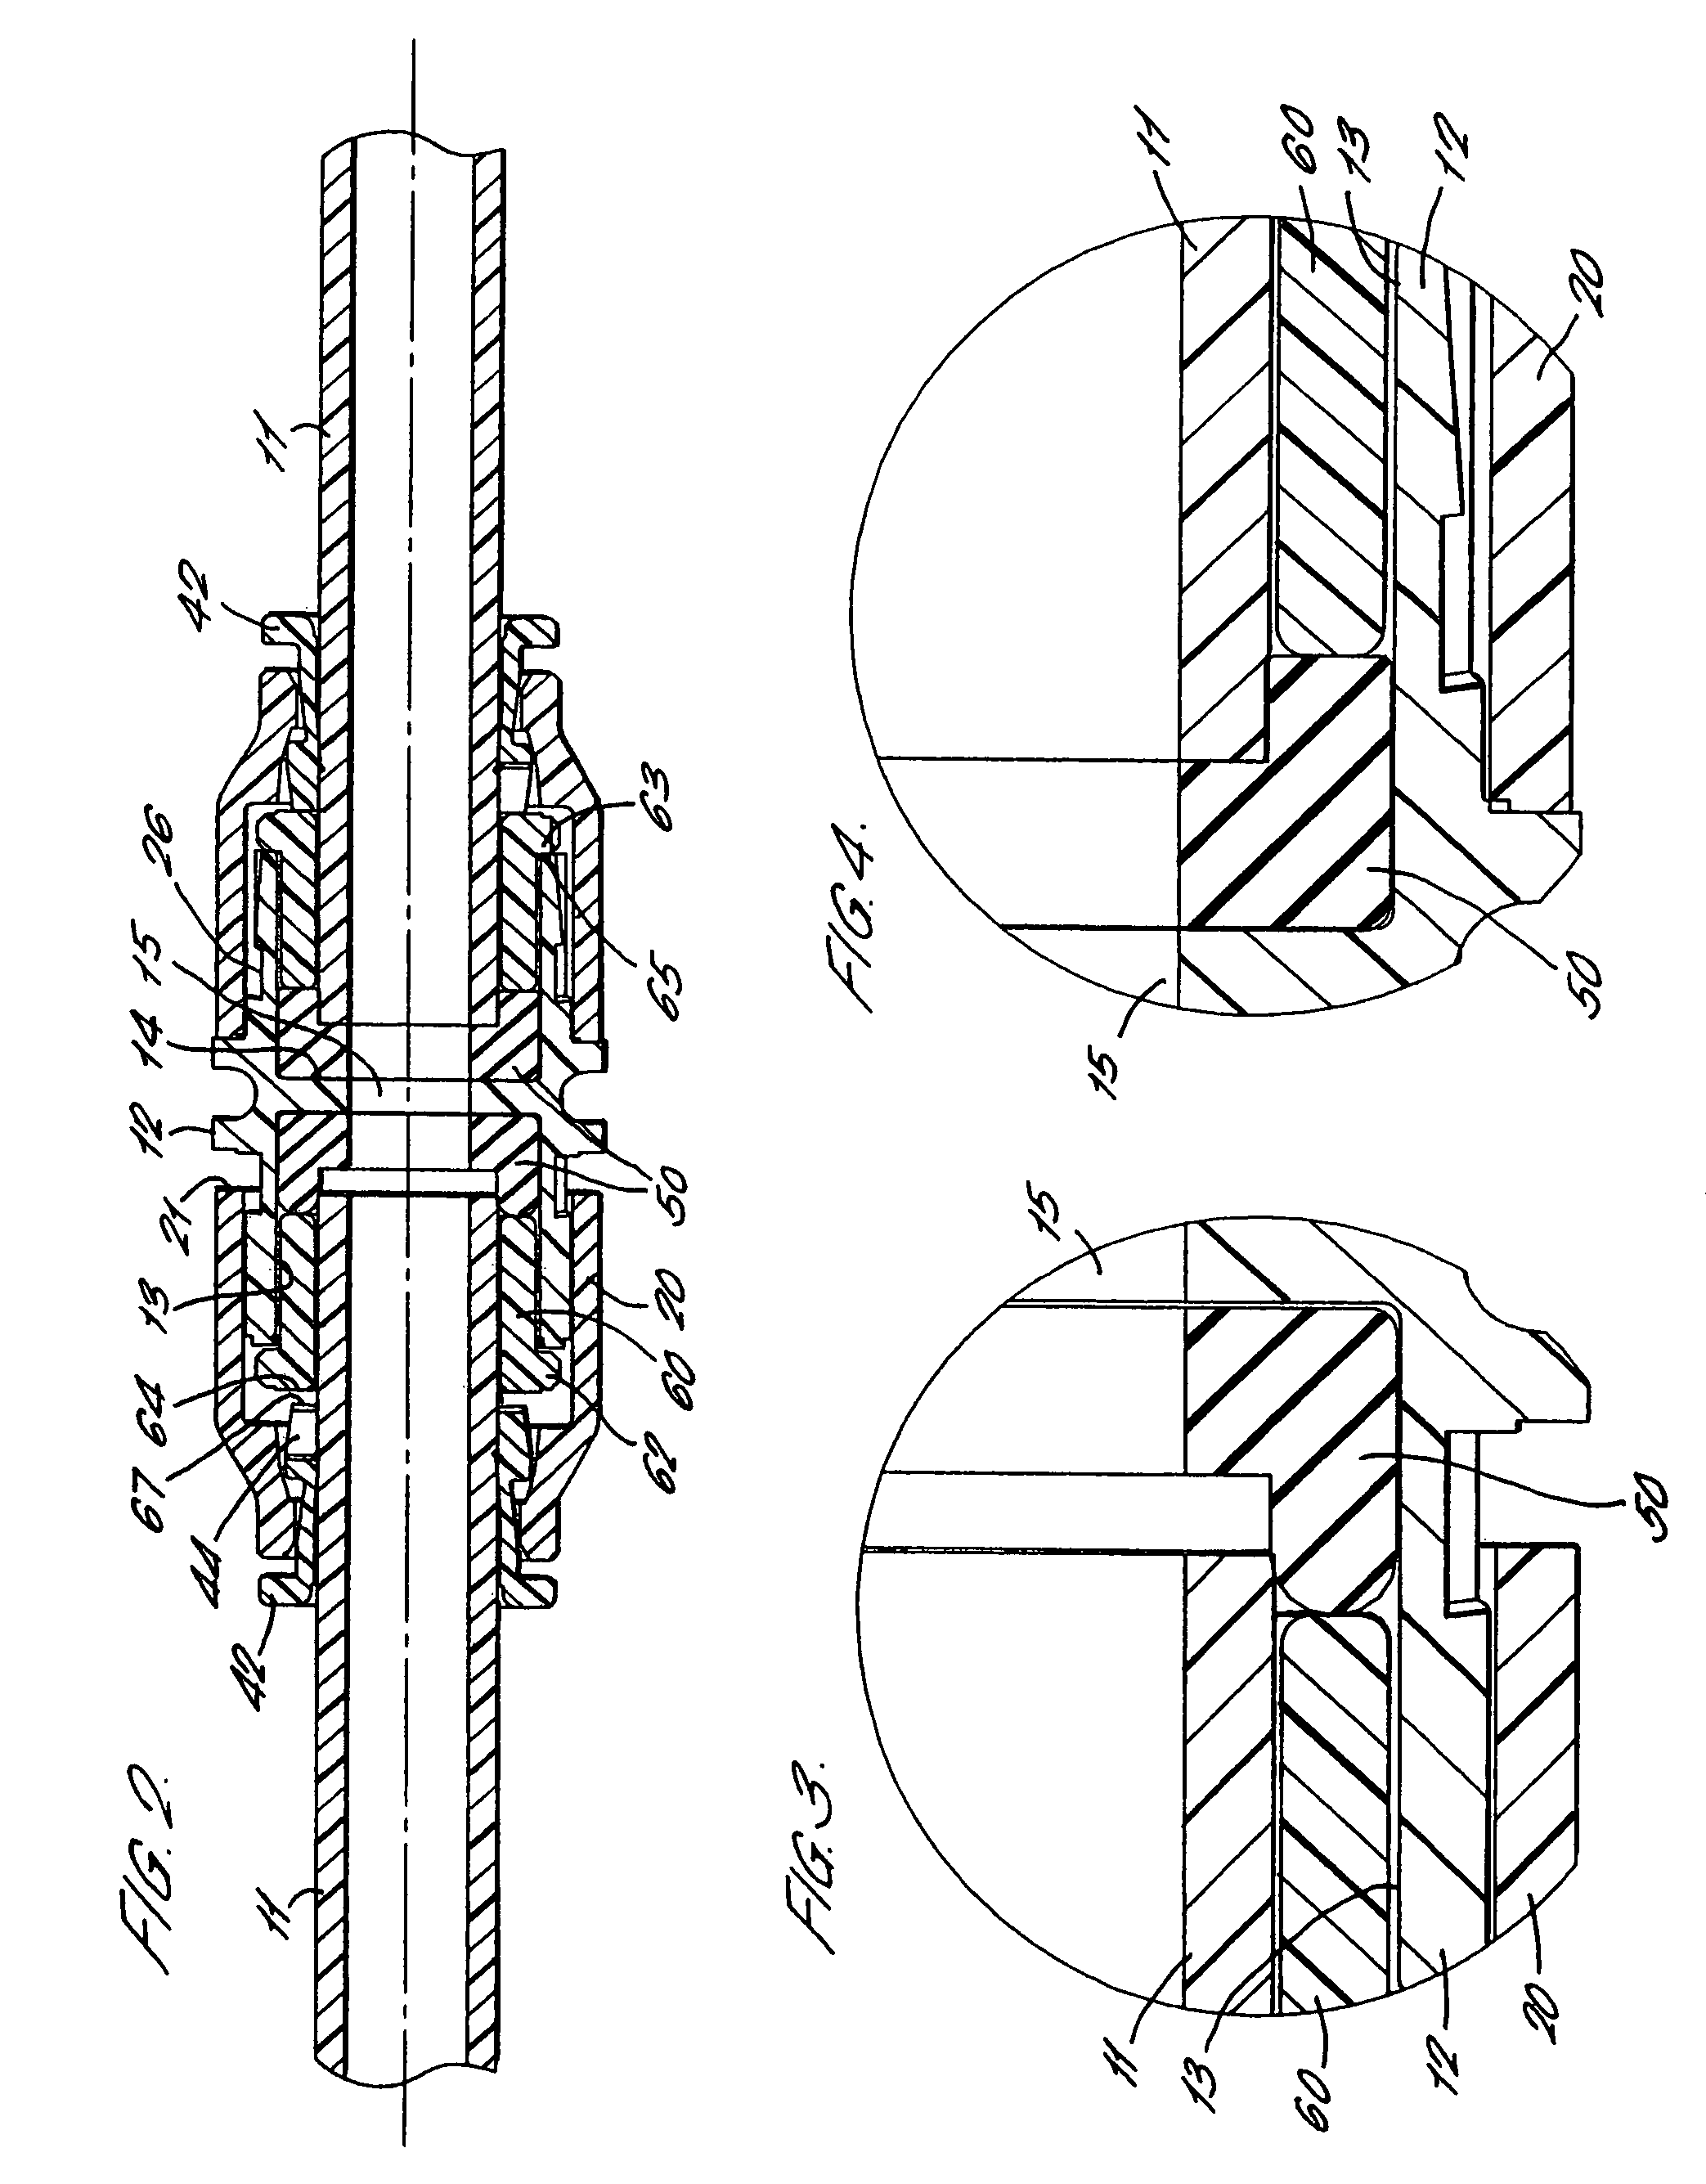 patent us7410193 tube couplings patents Fifth Wheel Coupling patent drawing